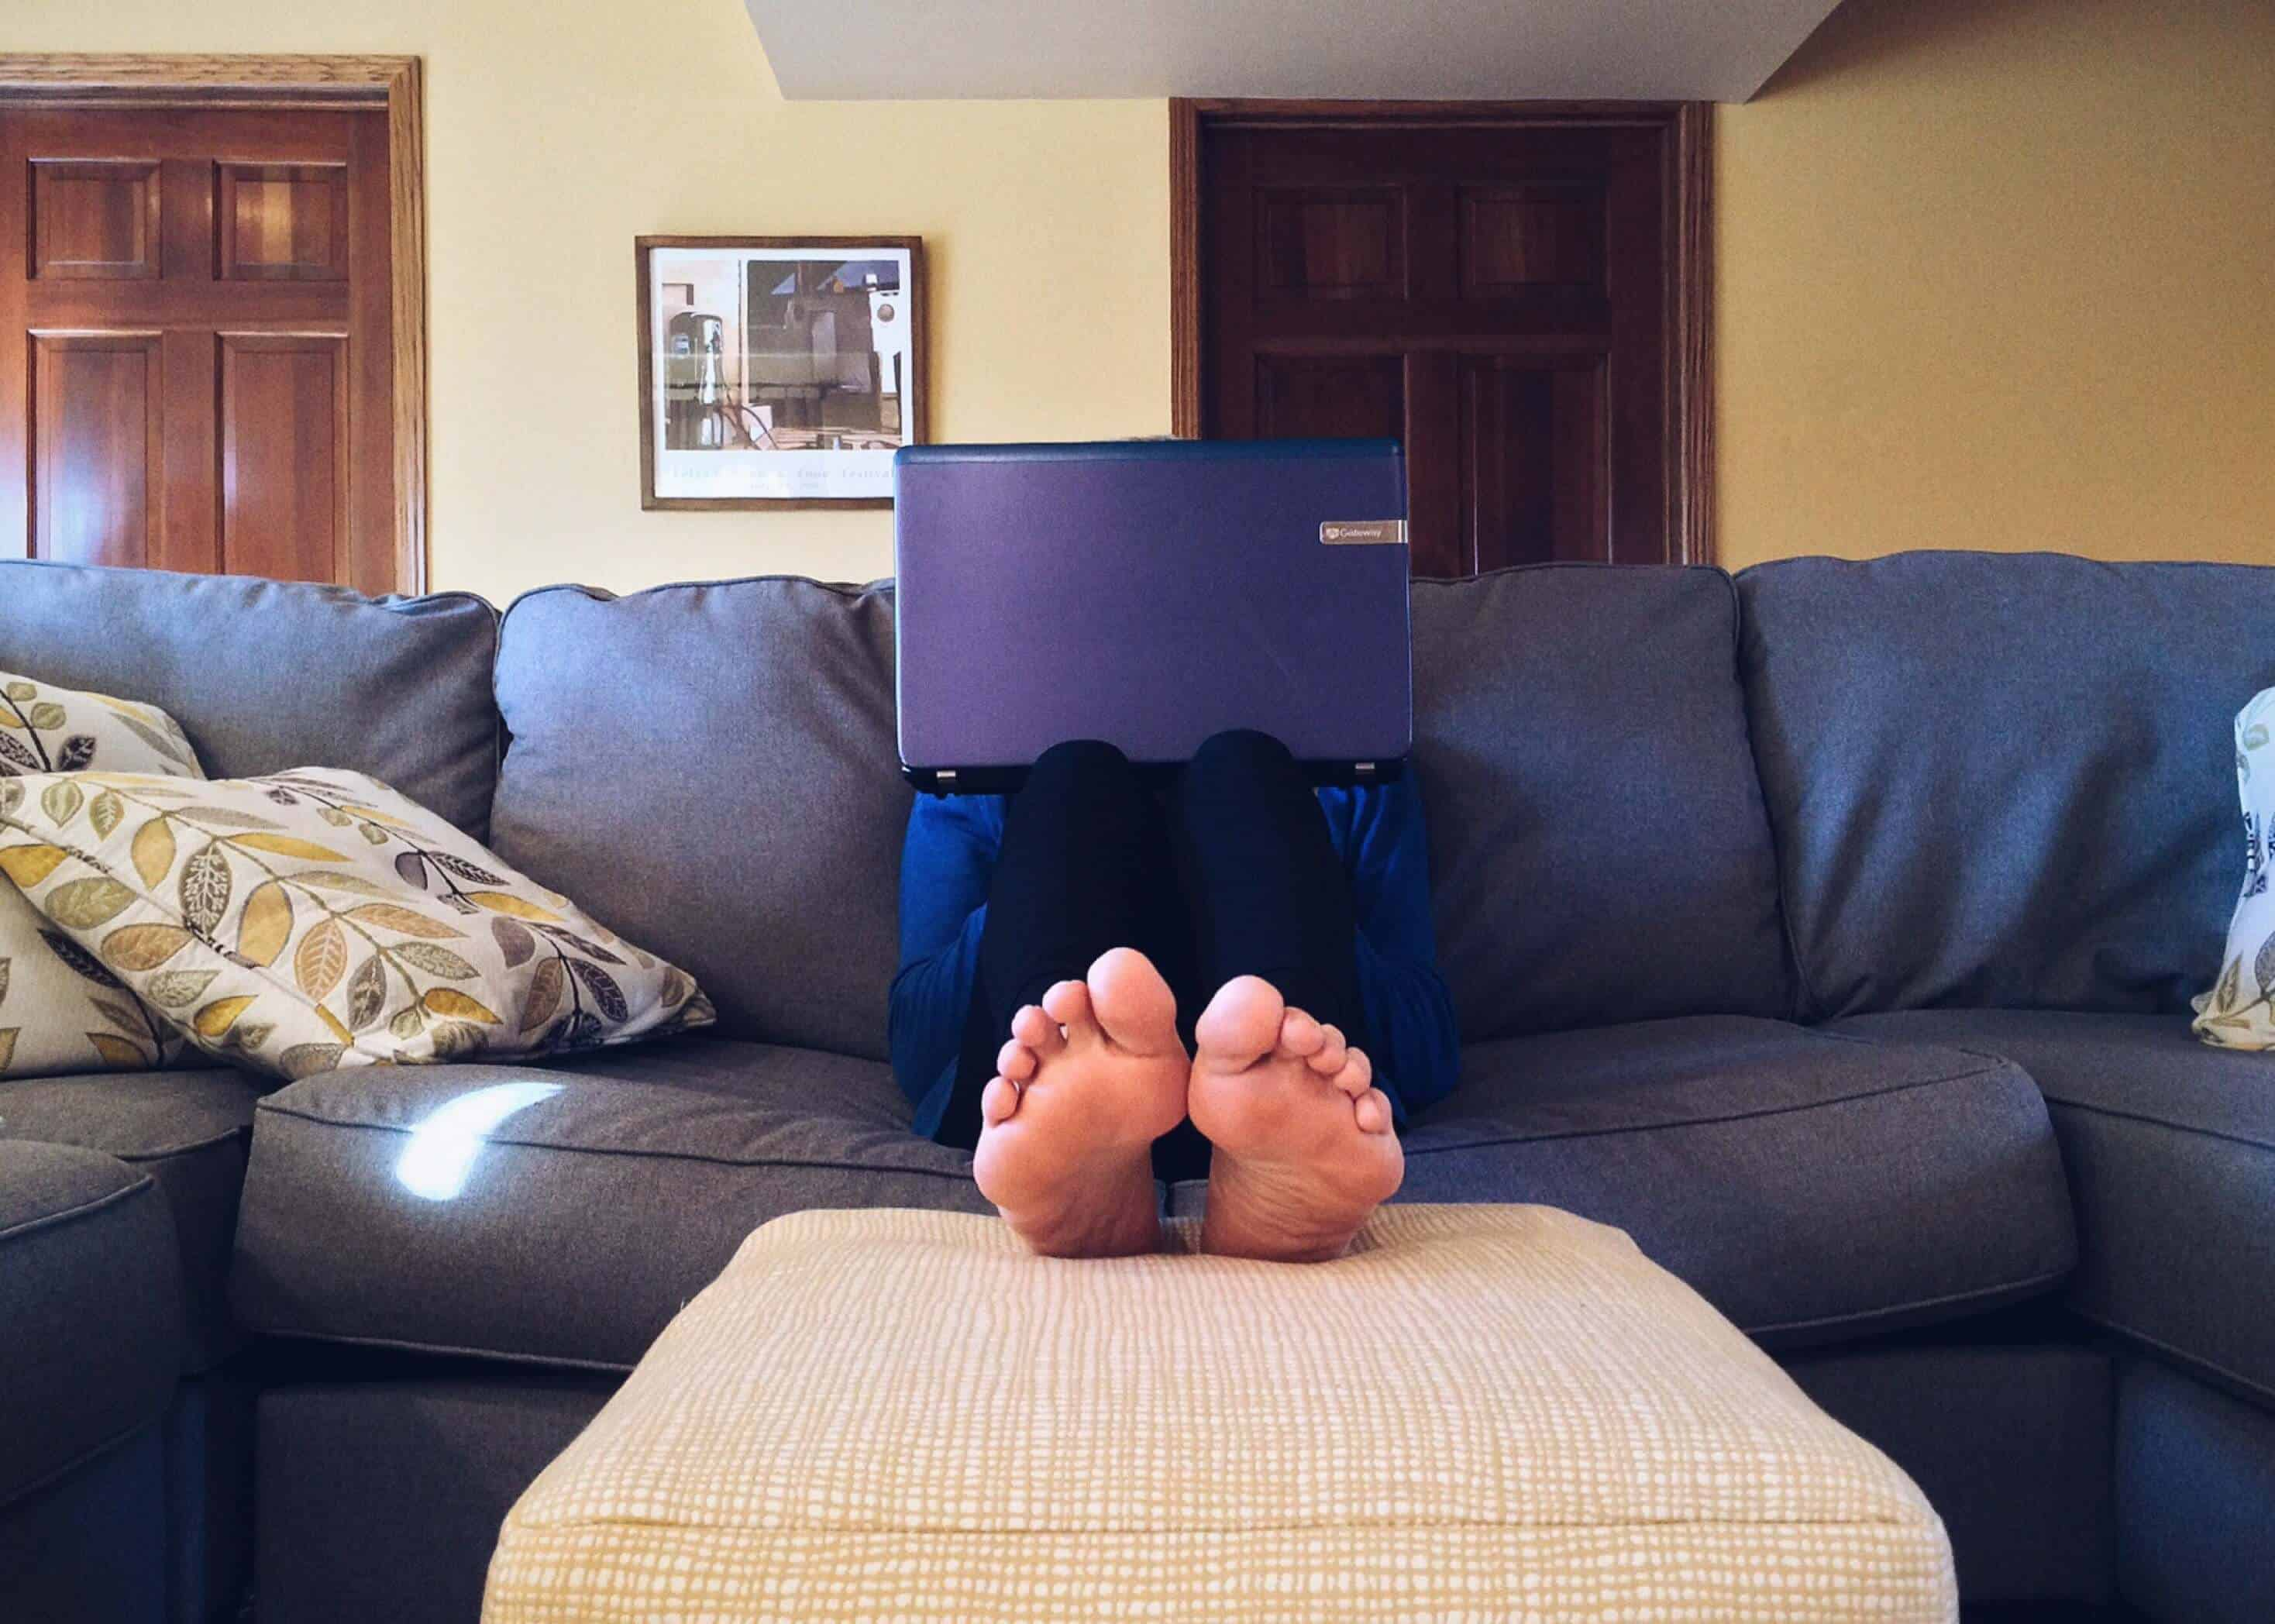 7 Reasons Why Being Comfortable While Working is Important